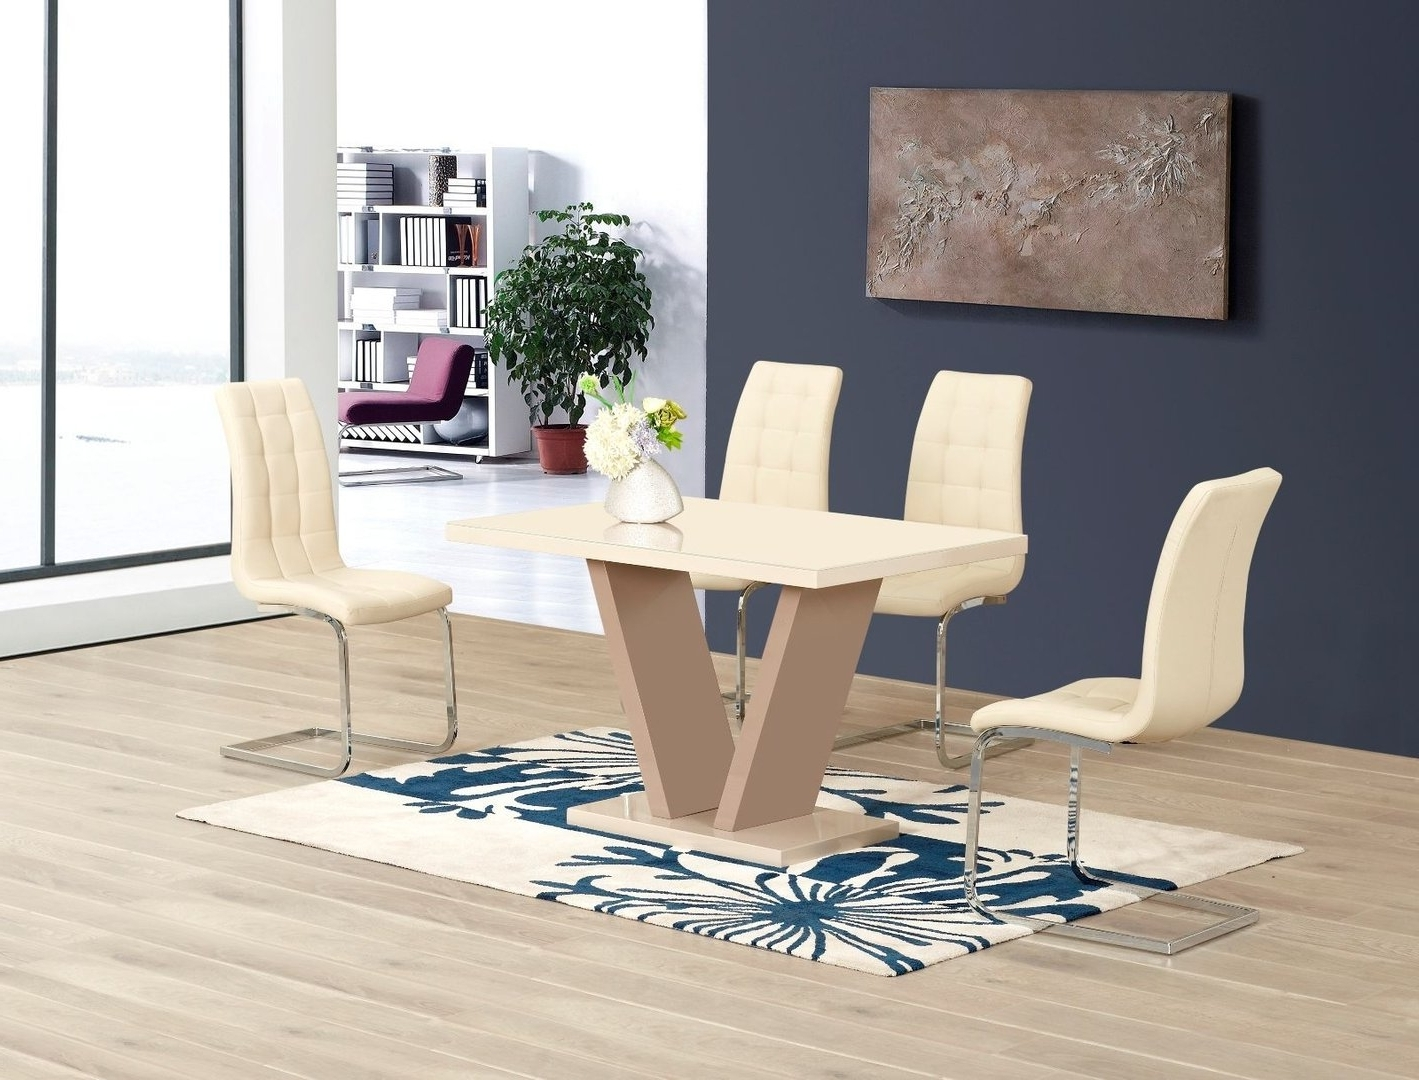 2018 Cream High Gloss Glass Dining Table And 6 Chairs – Homegenies In Glass And Chrome Dining Tables And Chairs (View 2 of 25)